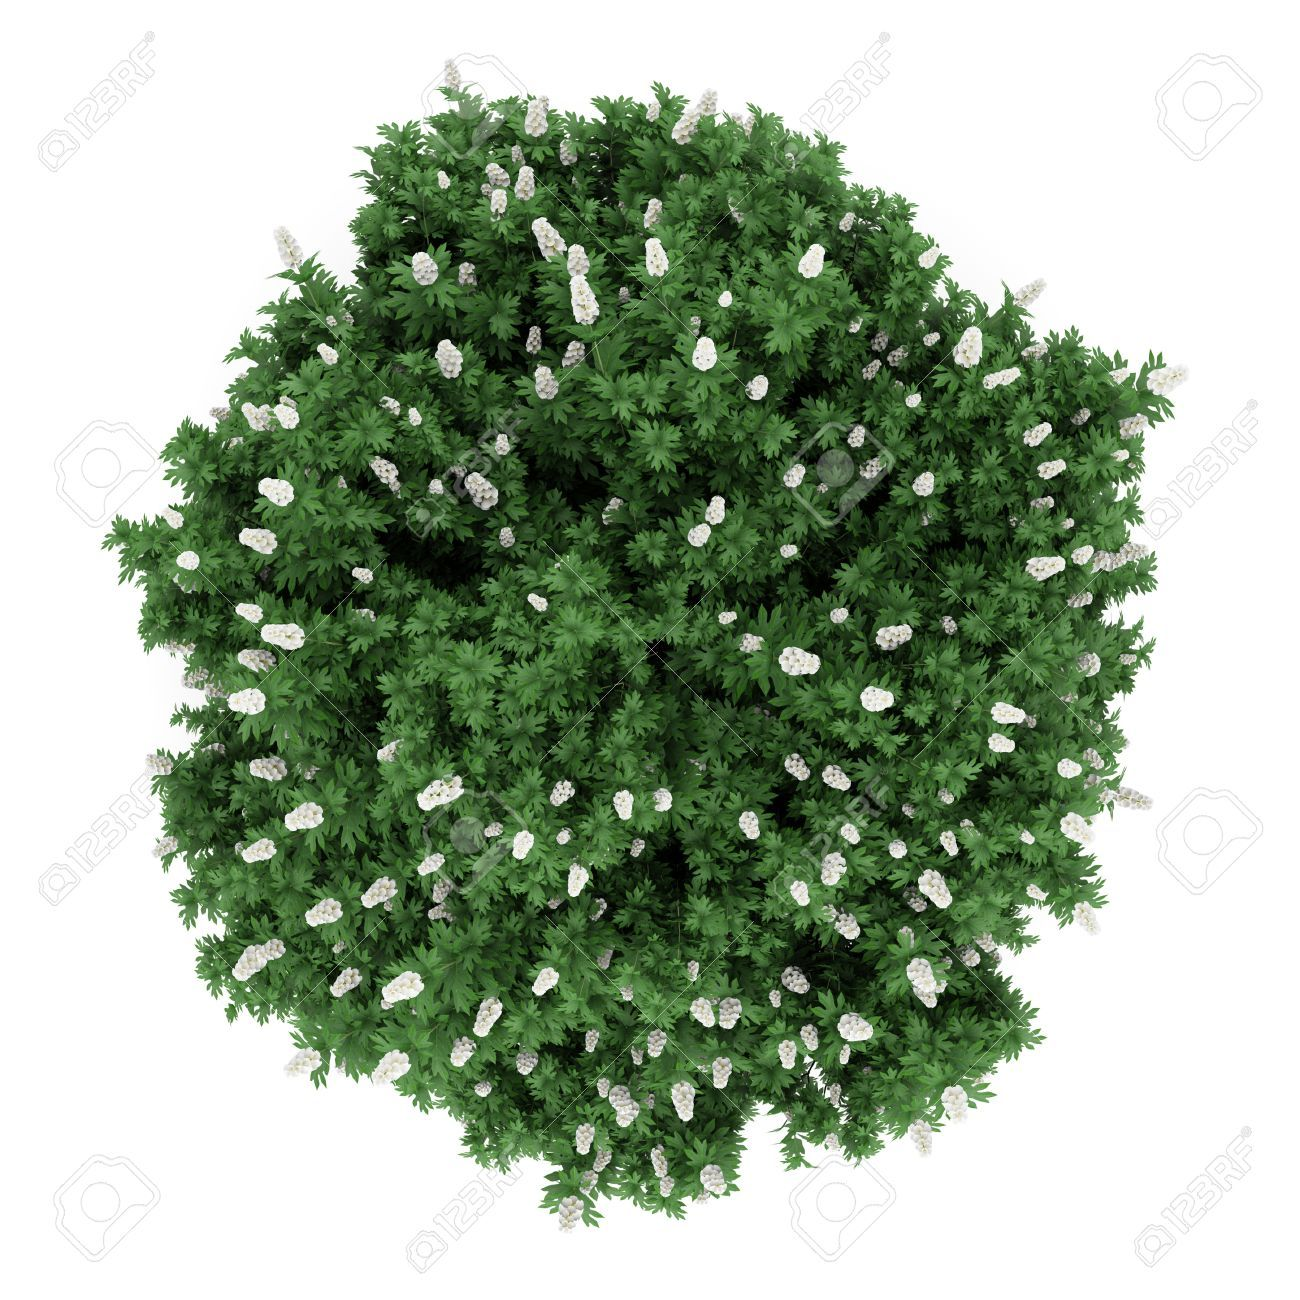 Shrub top view google search ref plant cutouts for Great small trees for landscaping